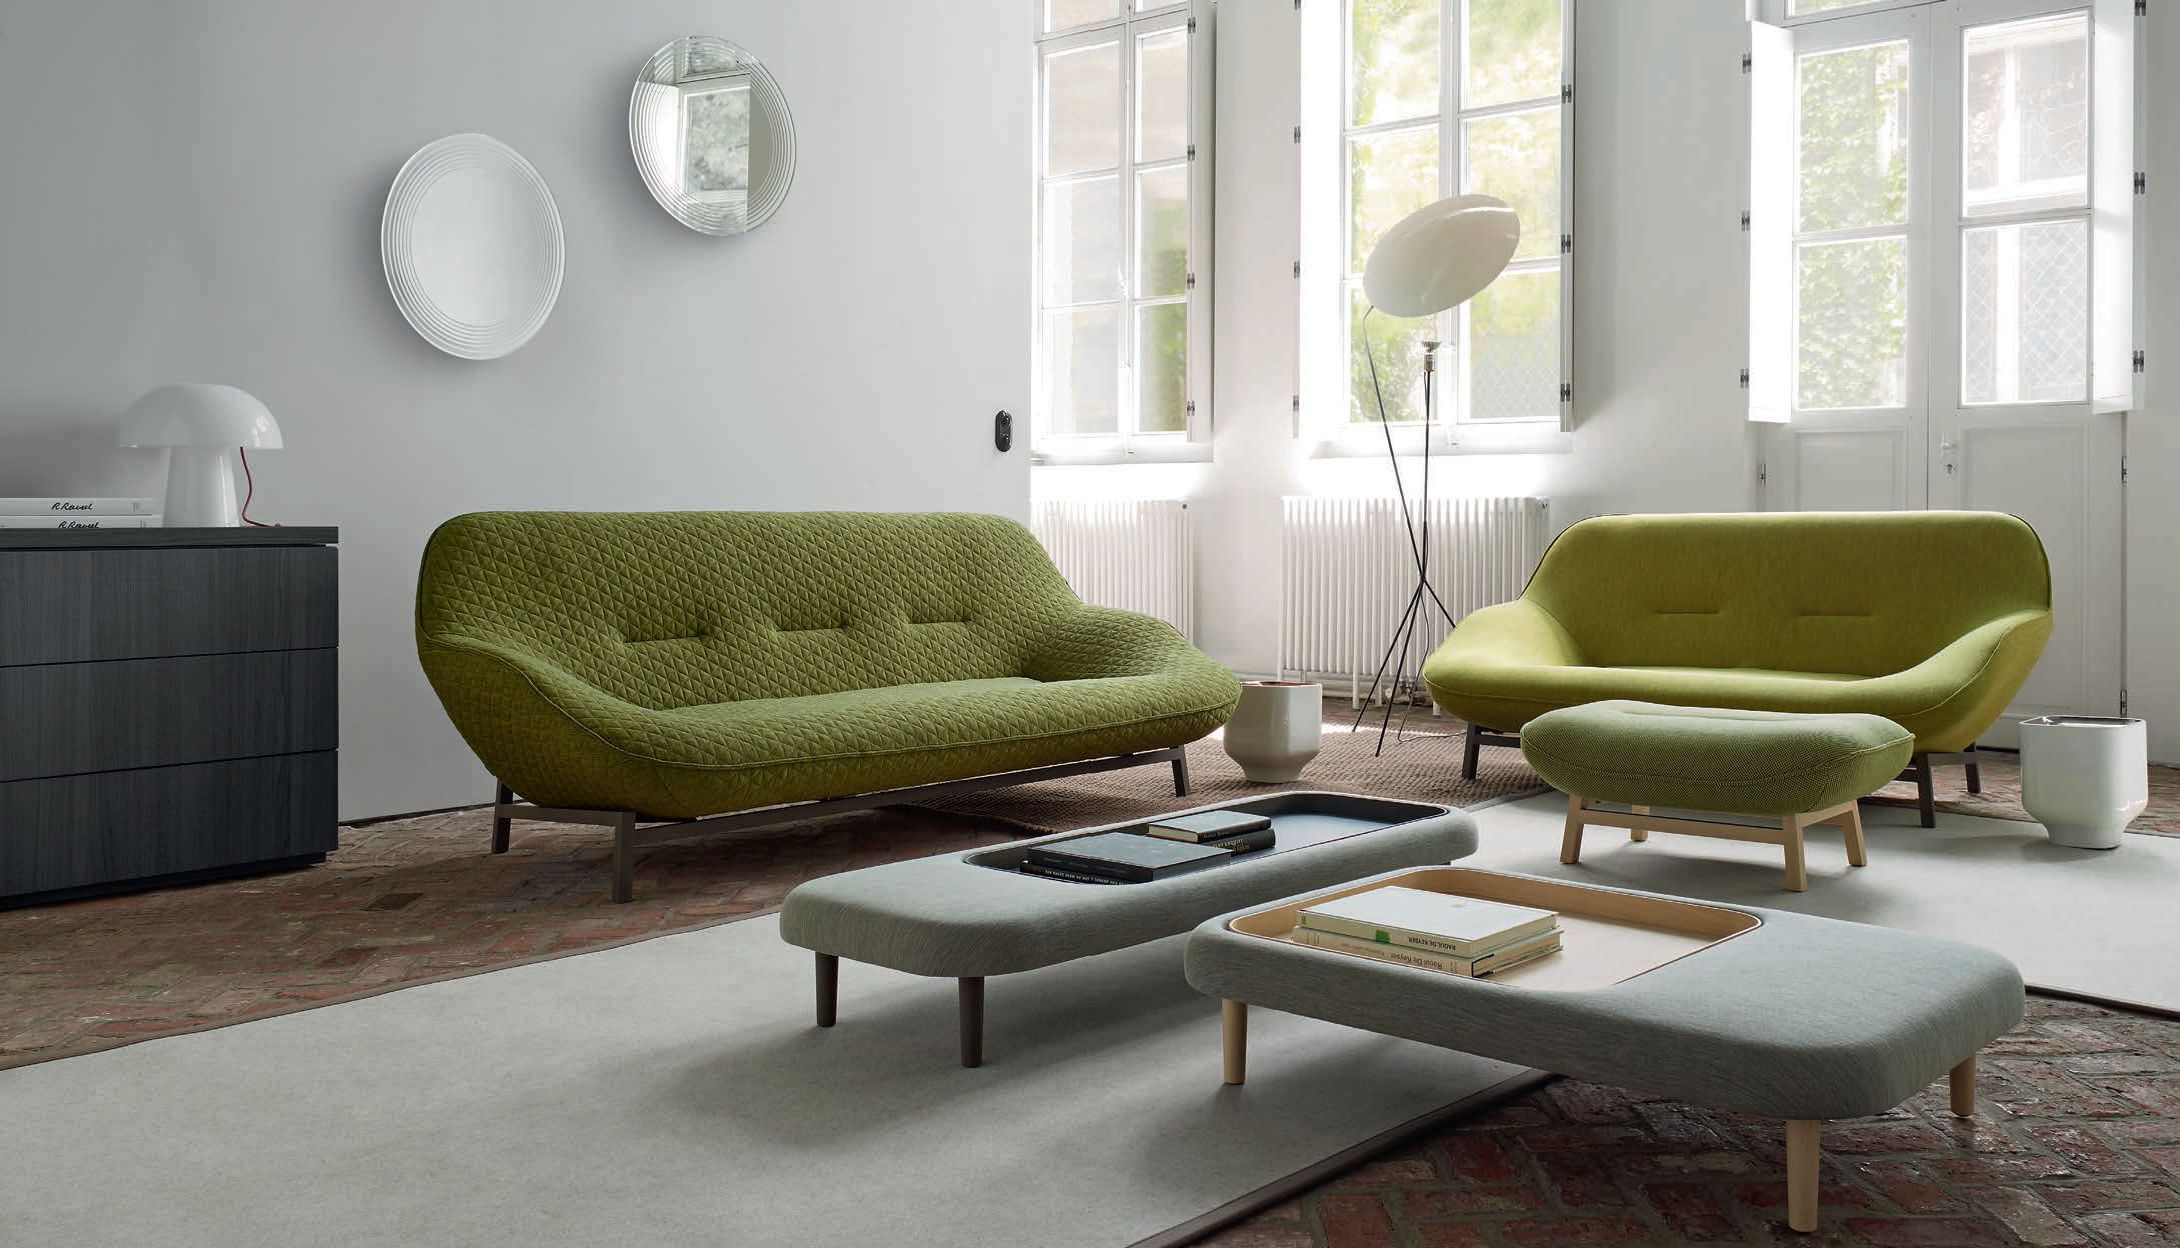 Ligne roset ploum sofa green google search favorite for Ligne roset canape